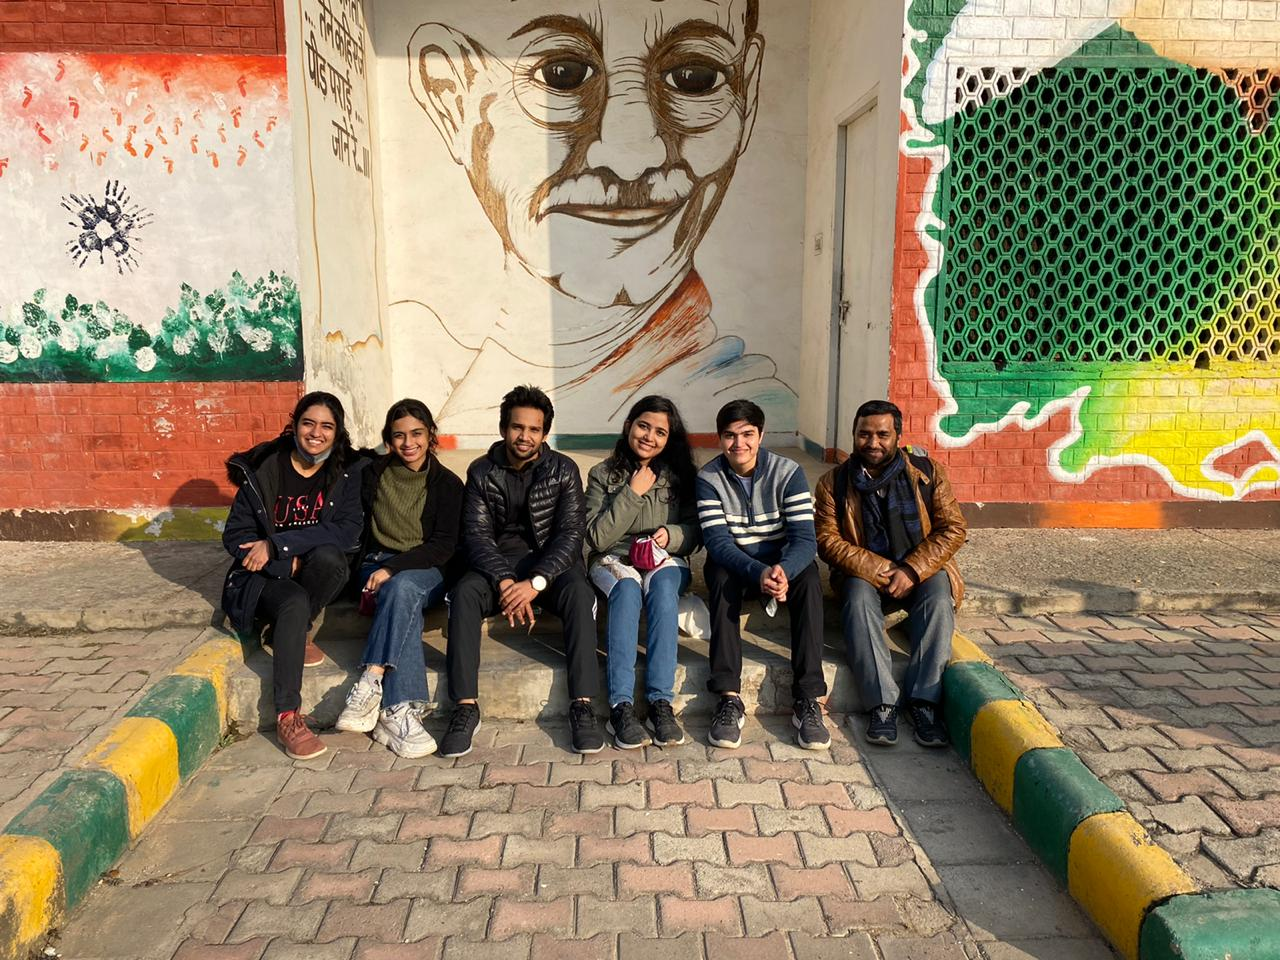 Shivranjani with her colleagues in front of a Gandhi-ji mural near the prison entrance.